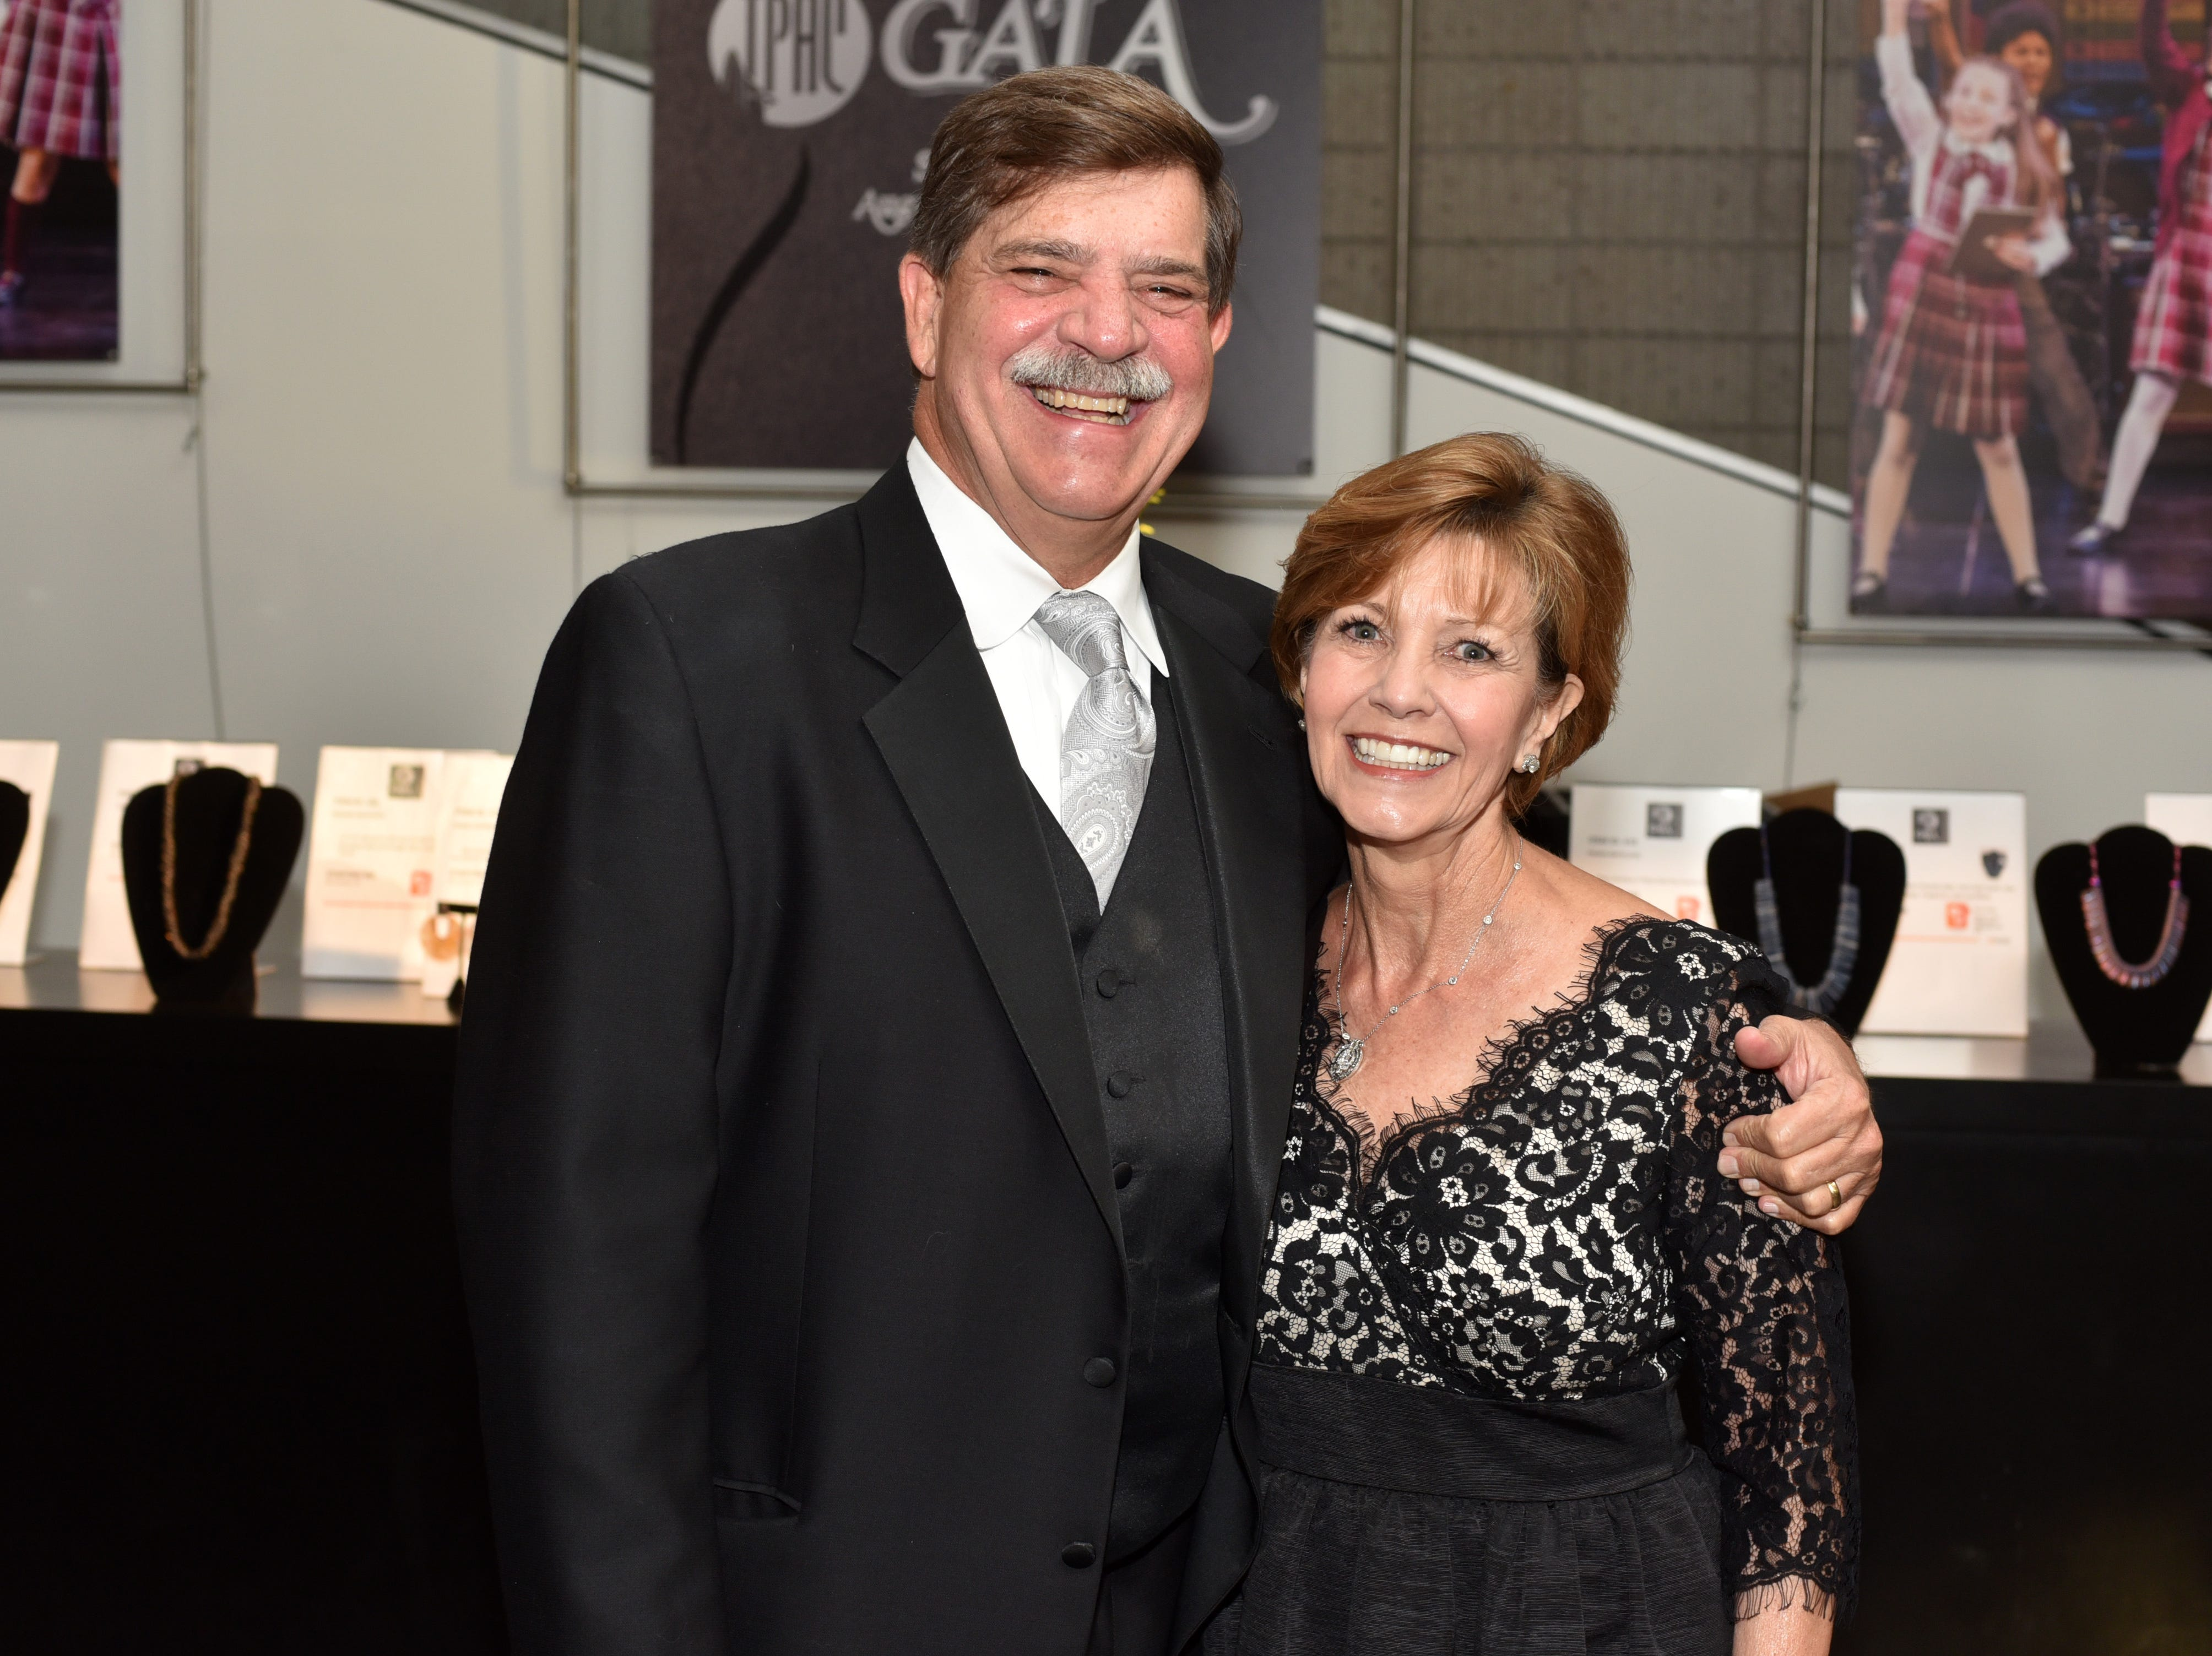 Phil and Brenda Wenk at the 18th annual TPAC Gala Aug. 25.